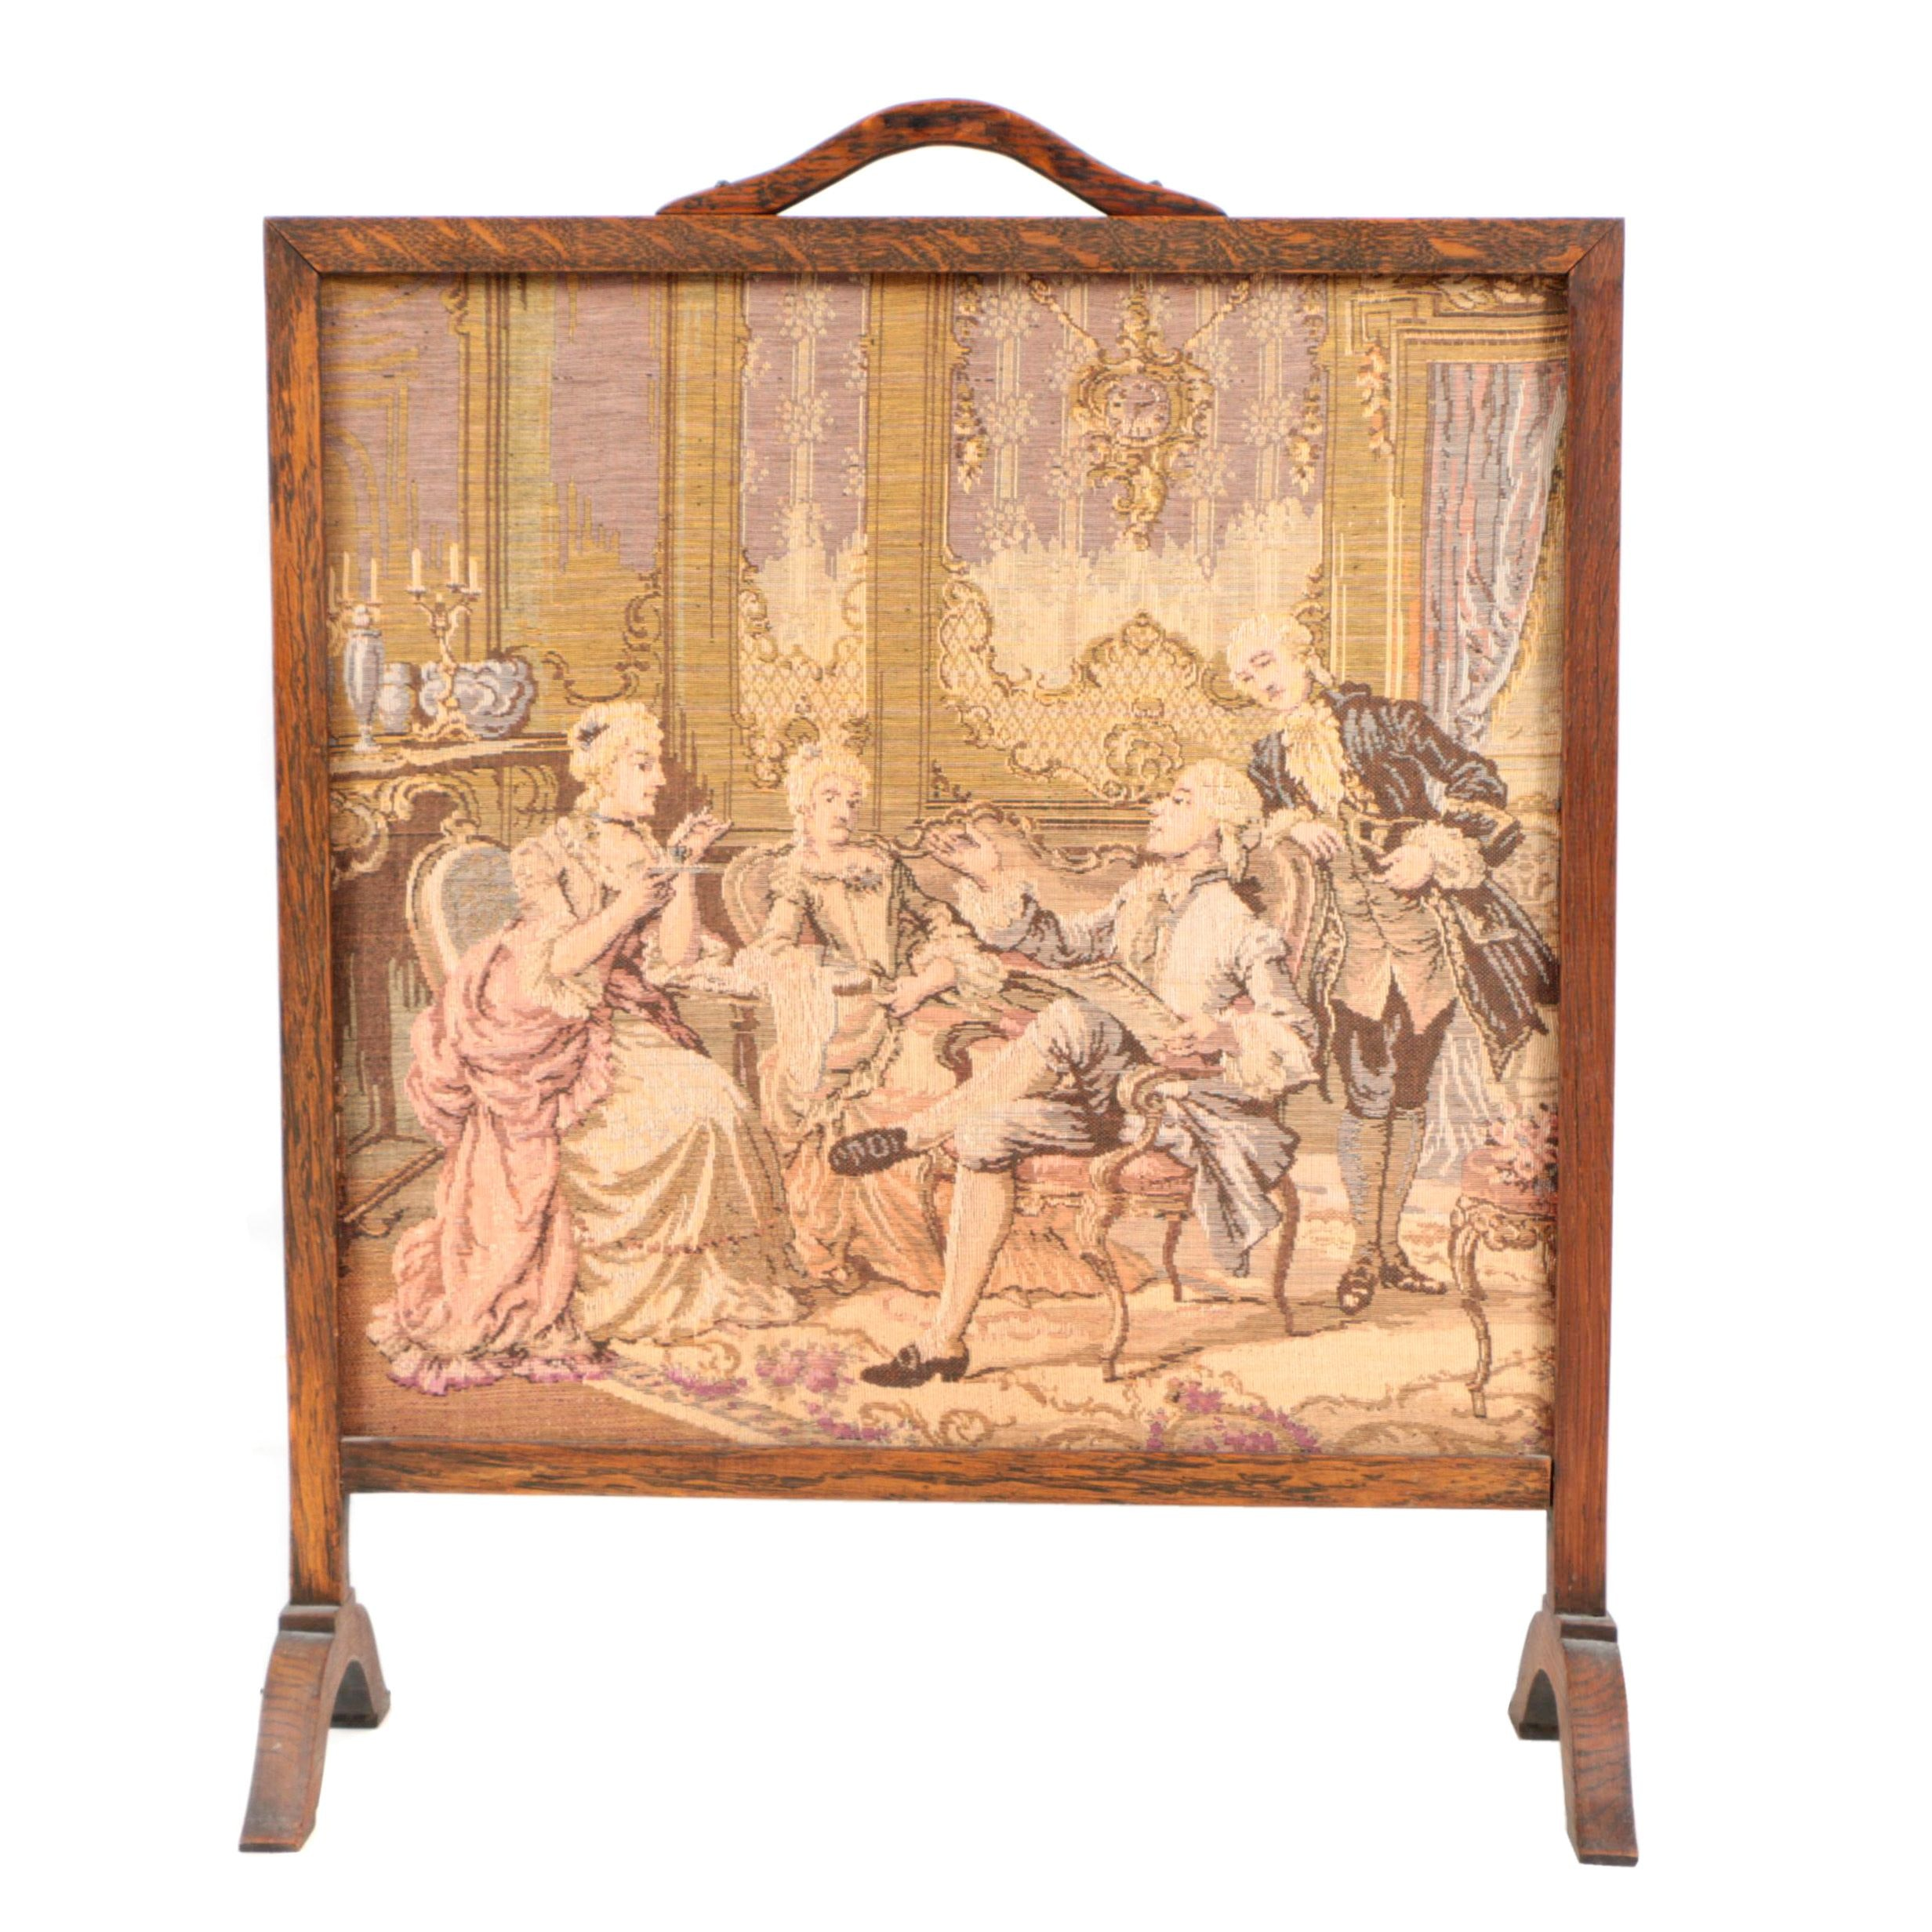 Machine-Woven Tapestry in a Fire Screen